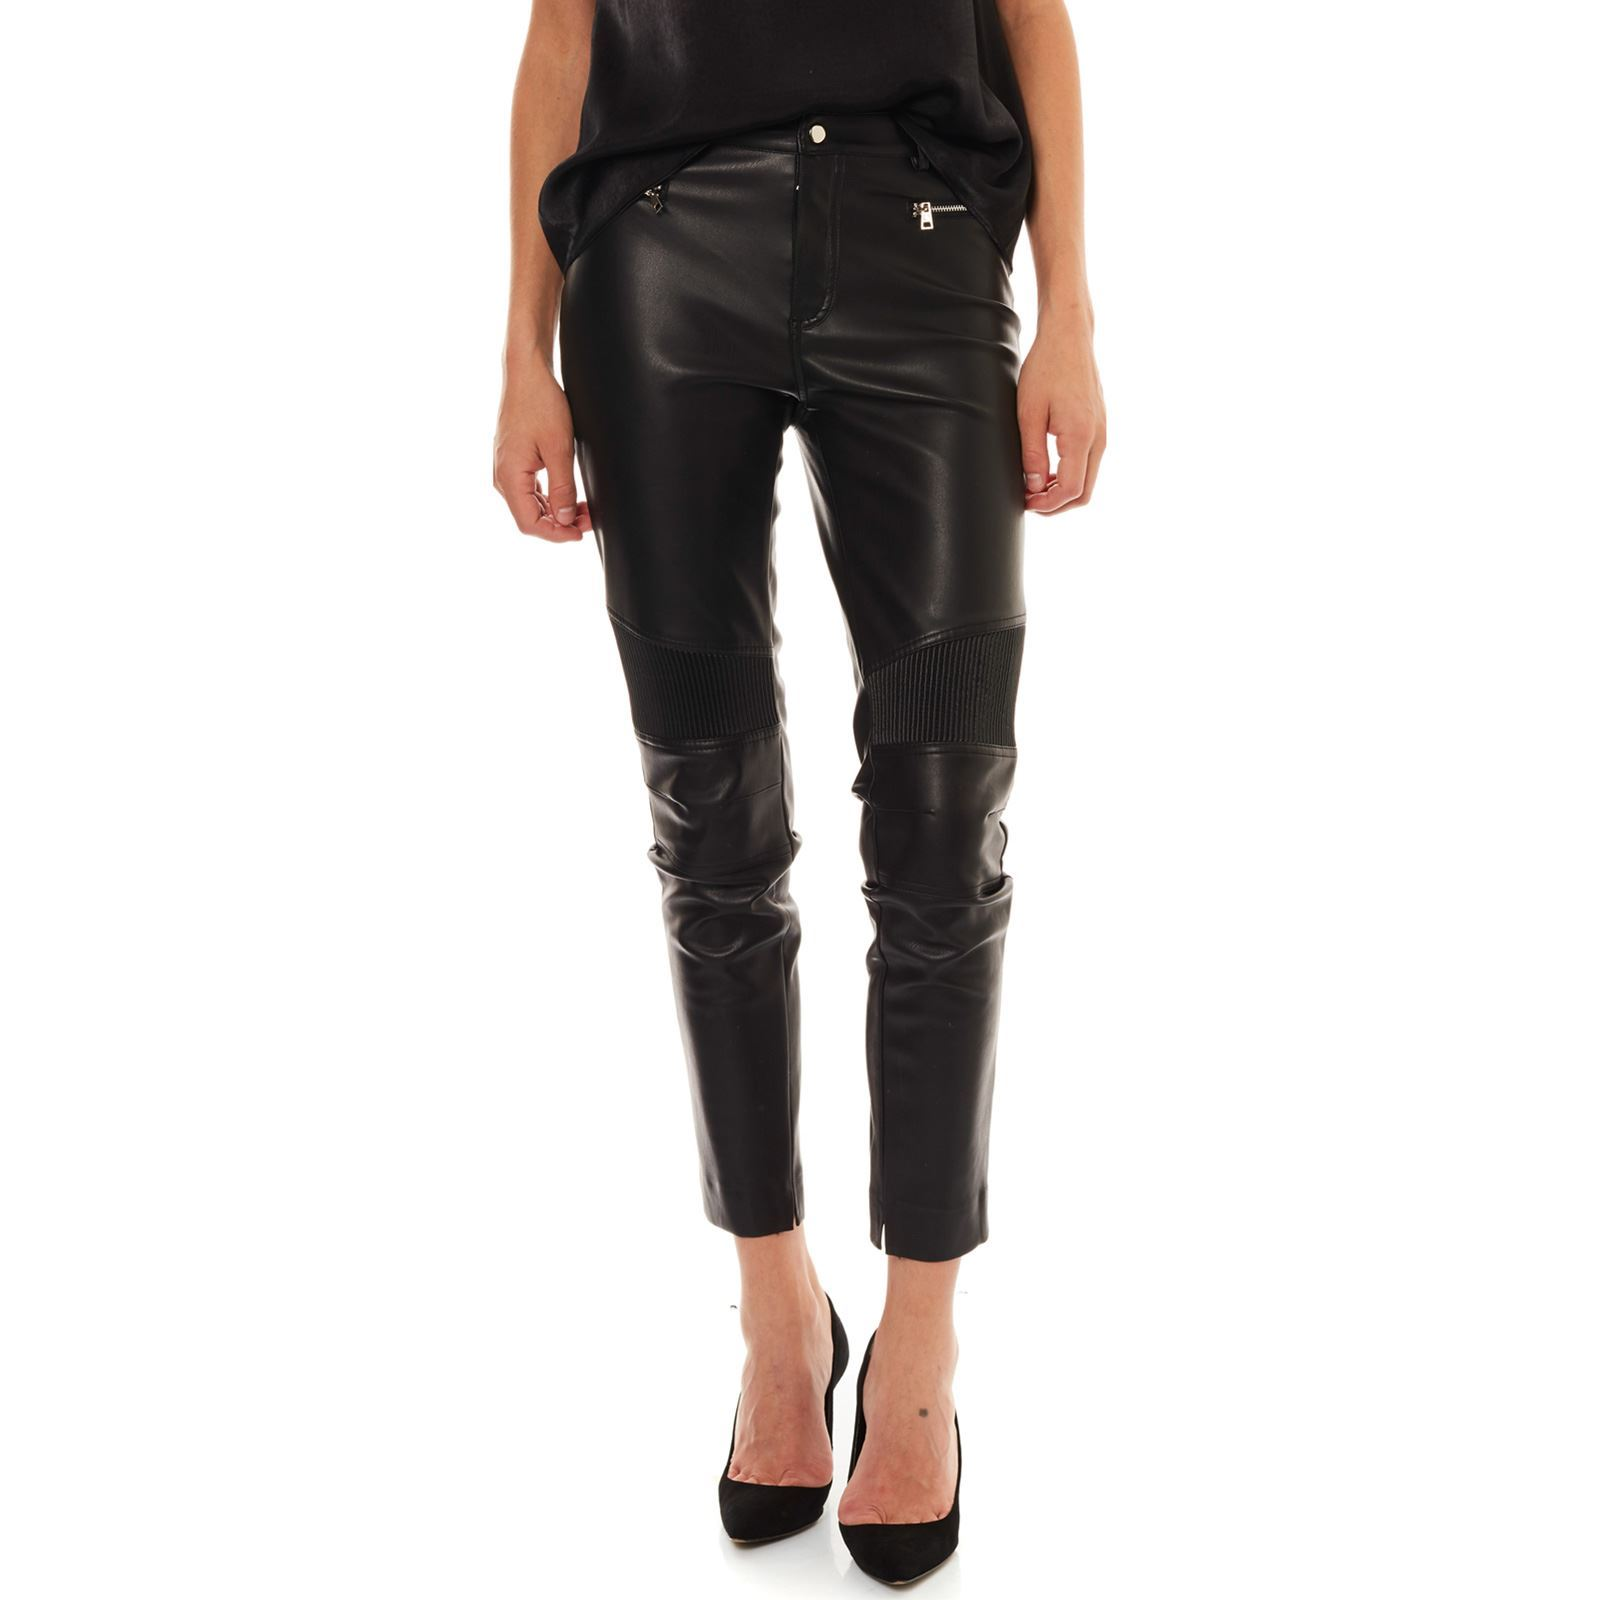 Molly Bracken Pantalon - noir